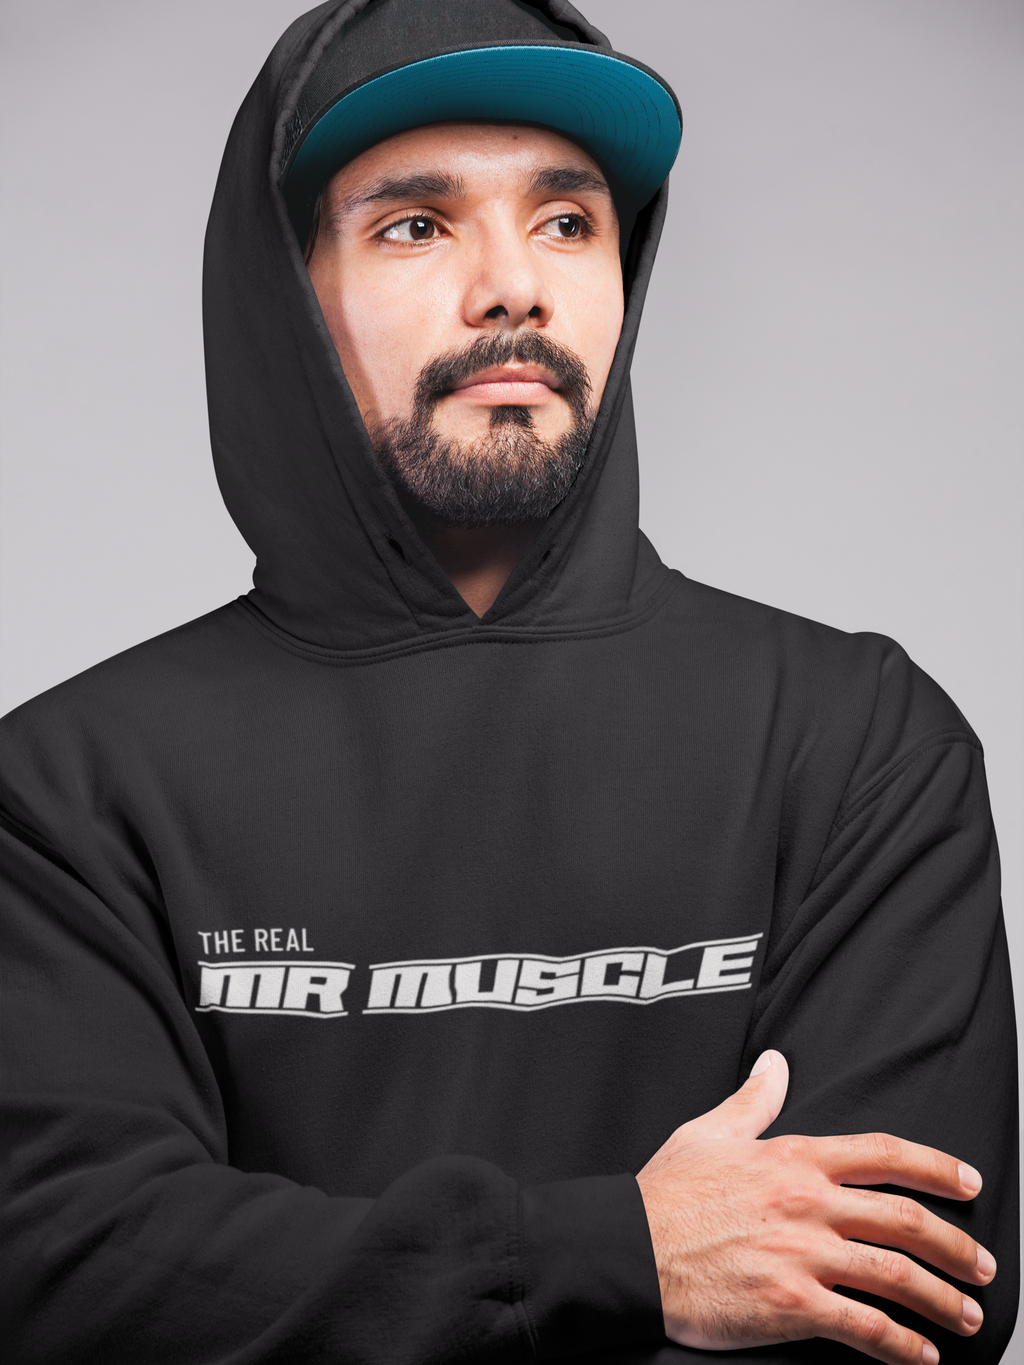 The Real Mr Muscle Hoodies for Men - SuprCrowd